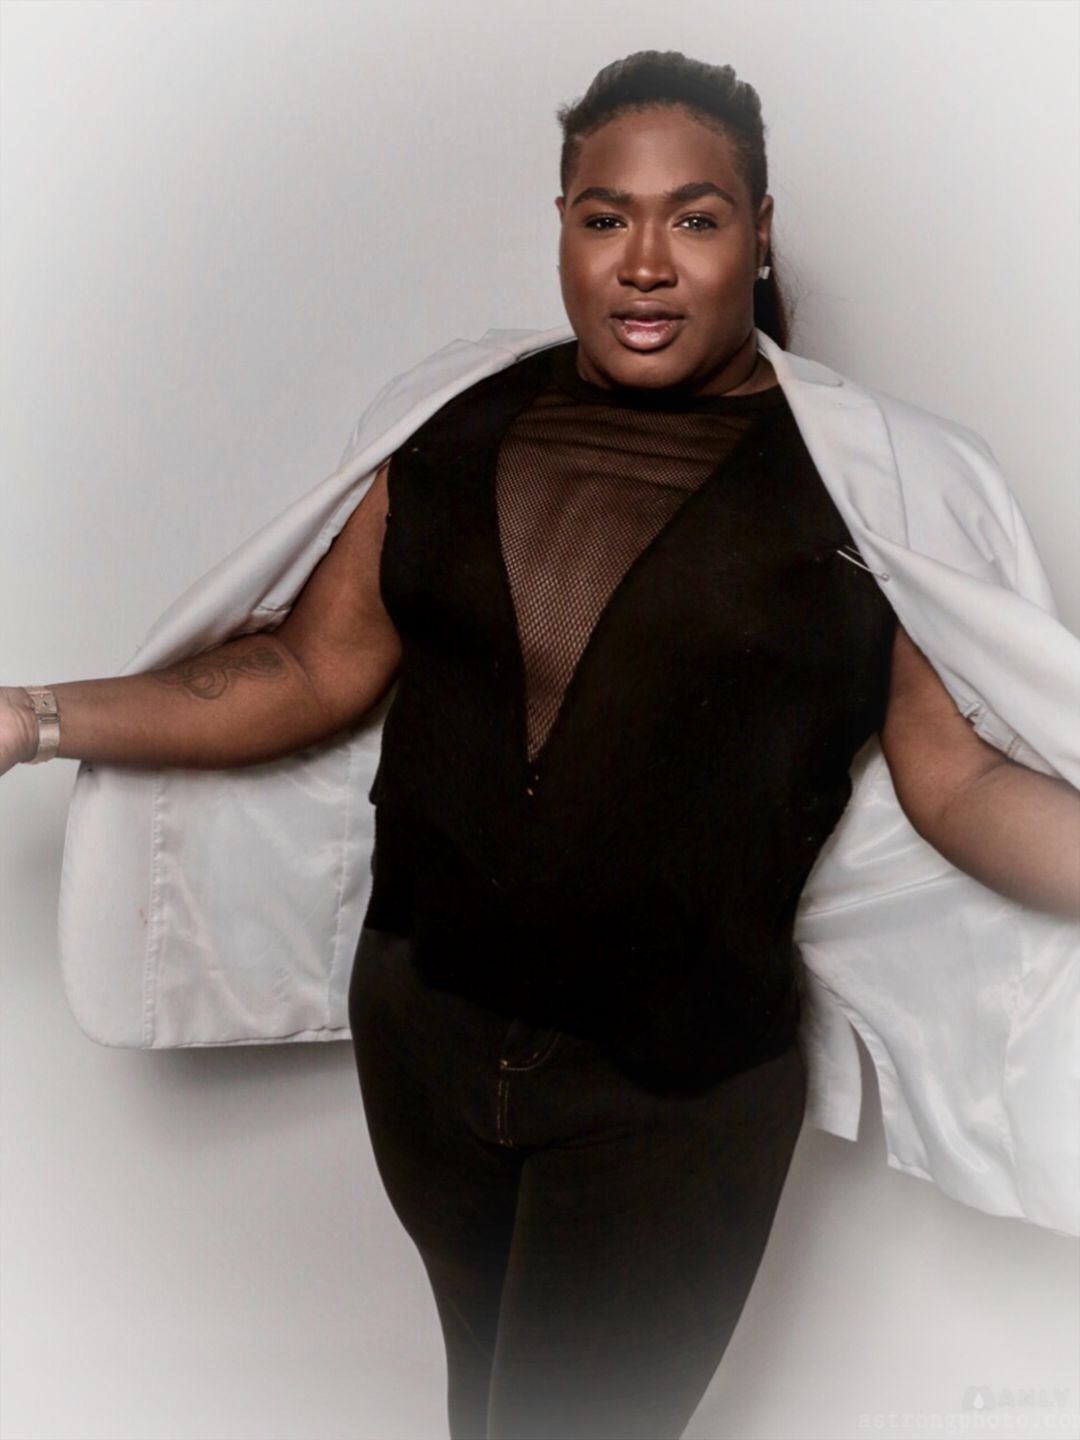 Branden Noel Thomas stars as Deloris in the Theatre Rhinoceros production of SISTER ACT: THE MUSICAL at the Gateway Theater.